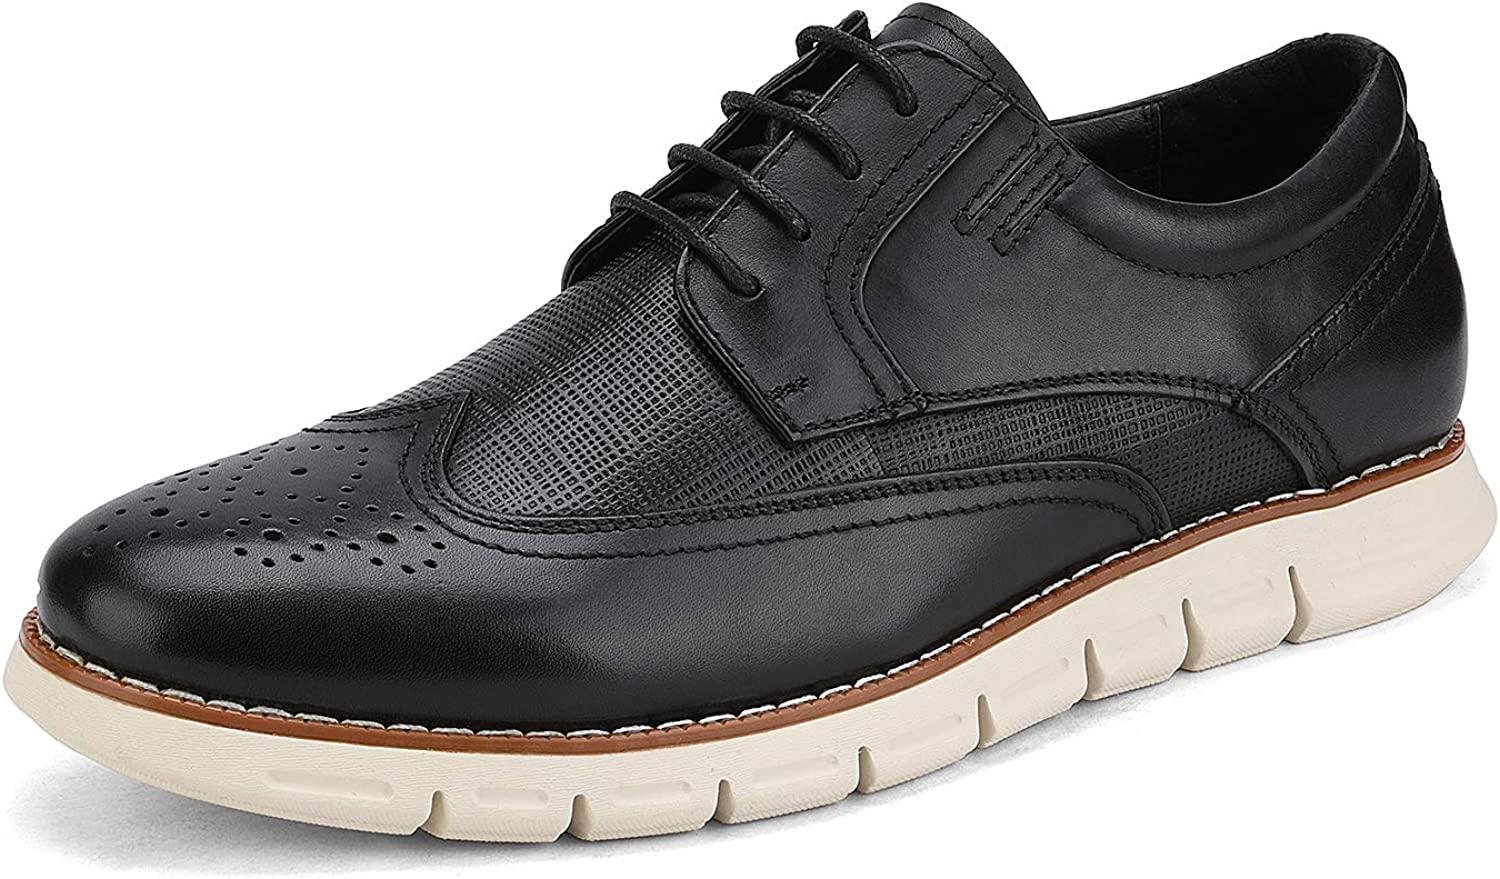 Branded goods Bruno Marc Men's Oxford 5 popular Dress Sneakers Casual Shoe Leather